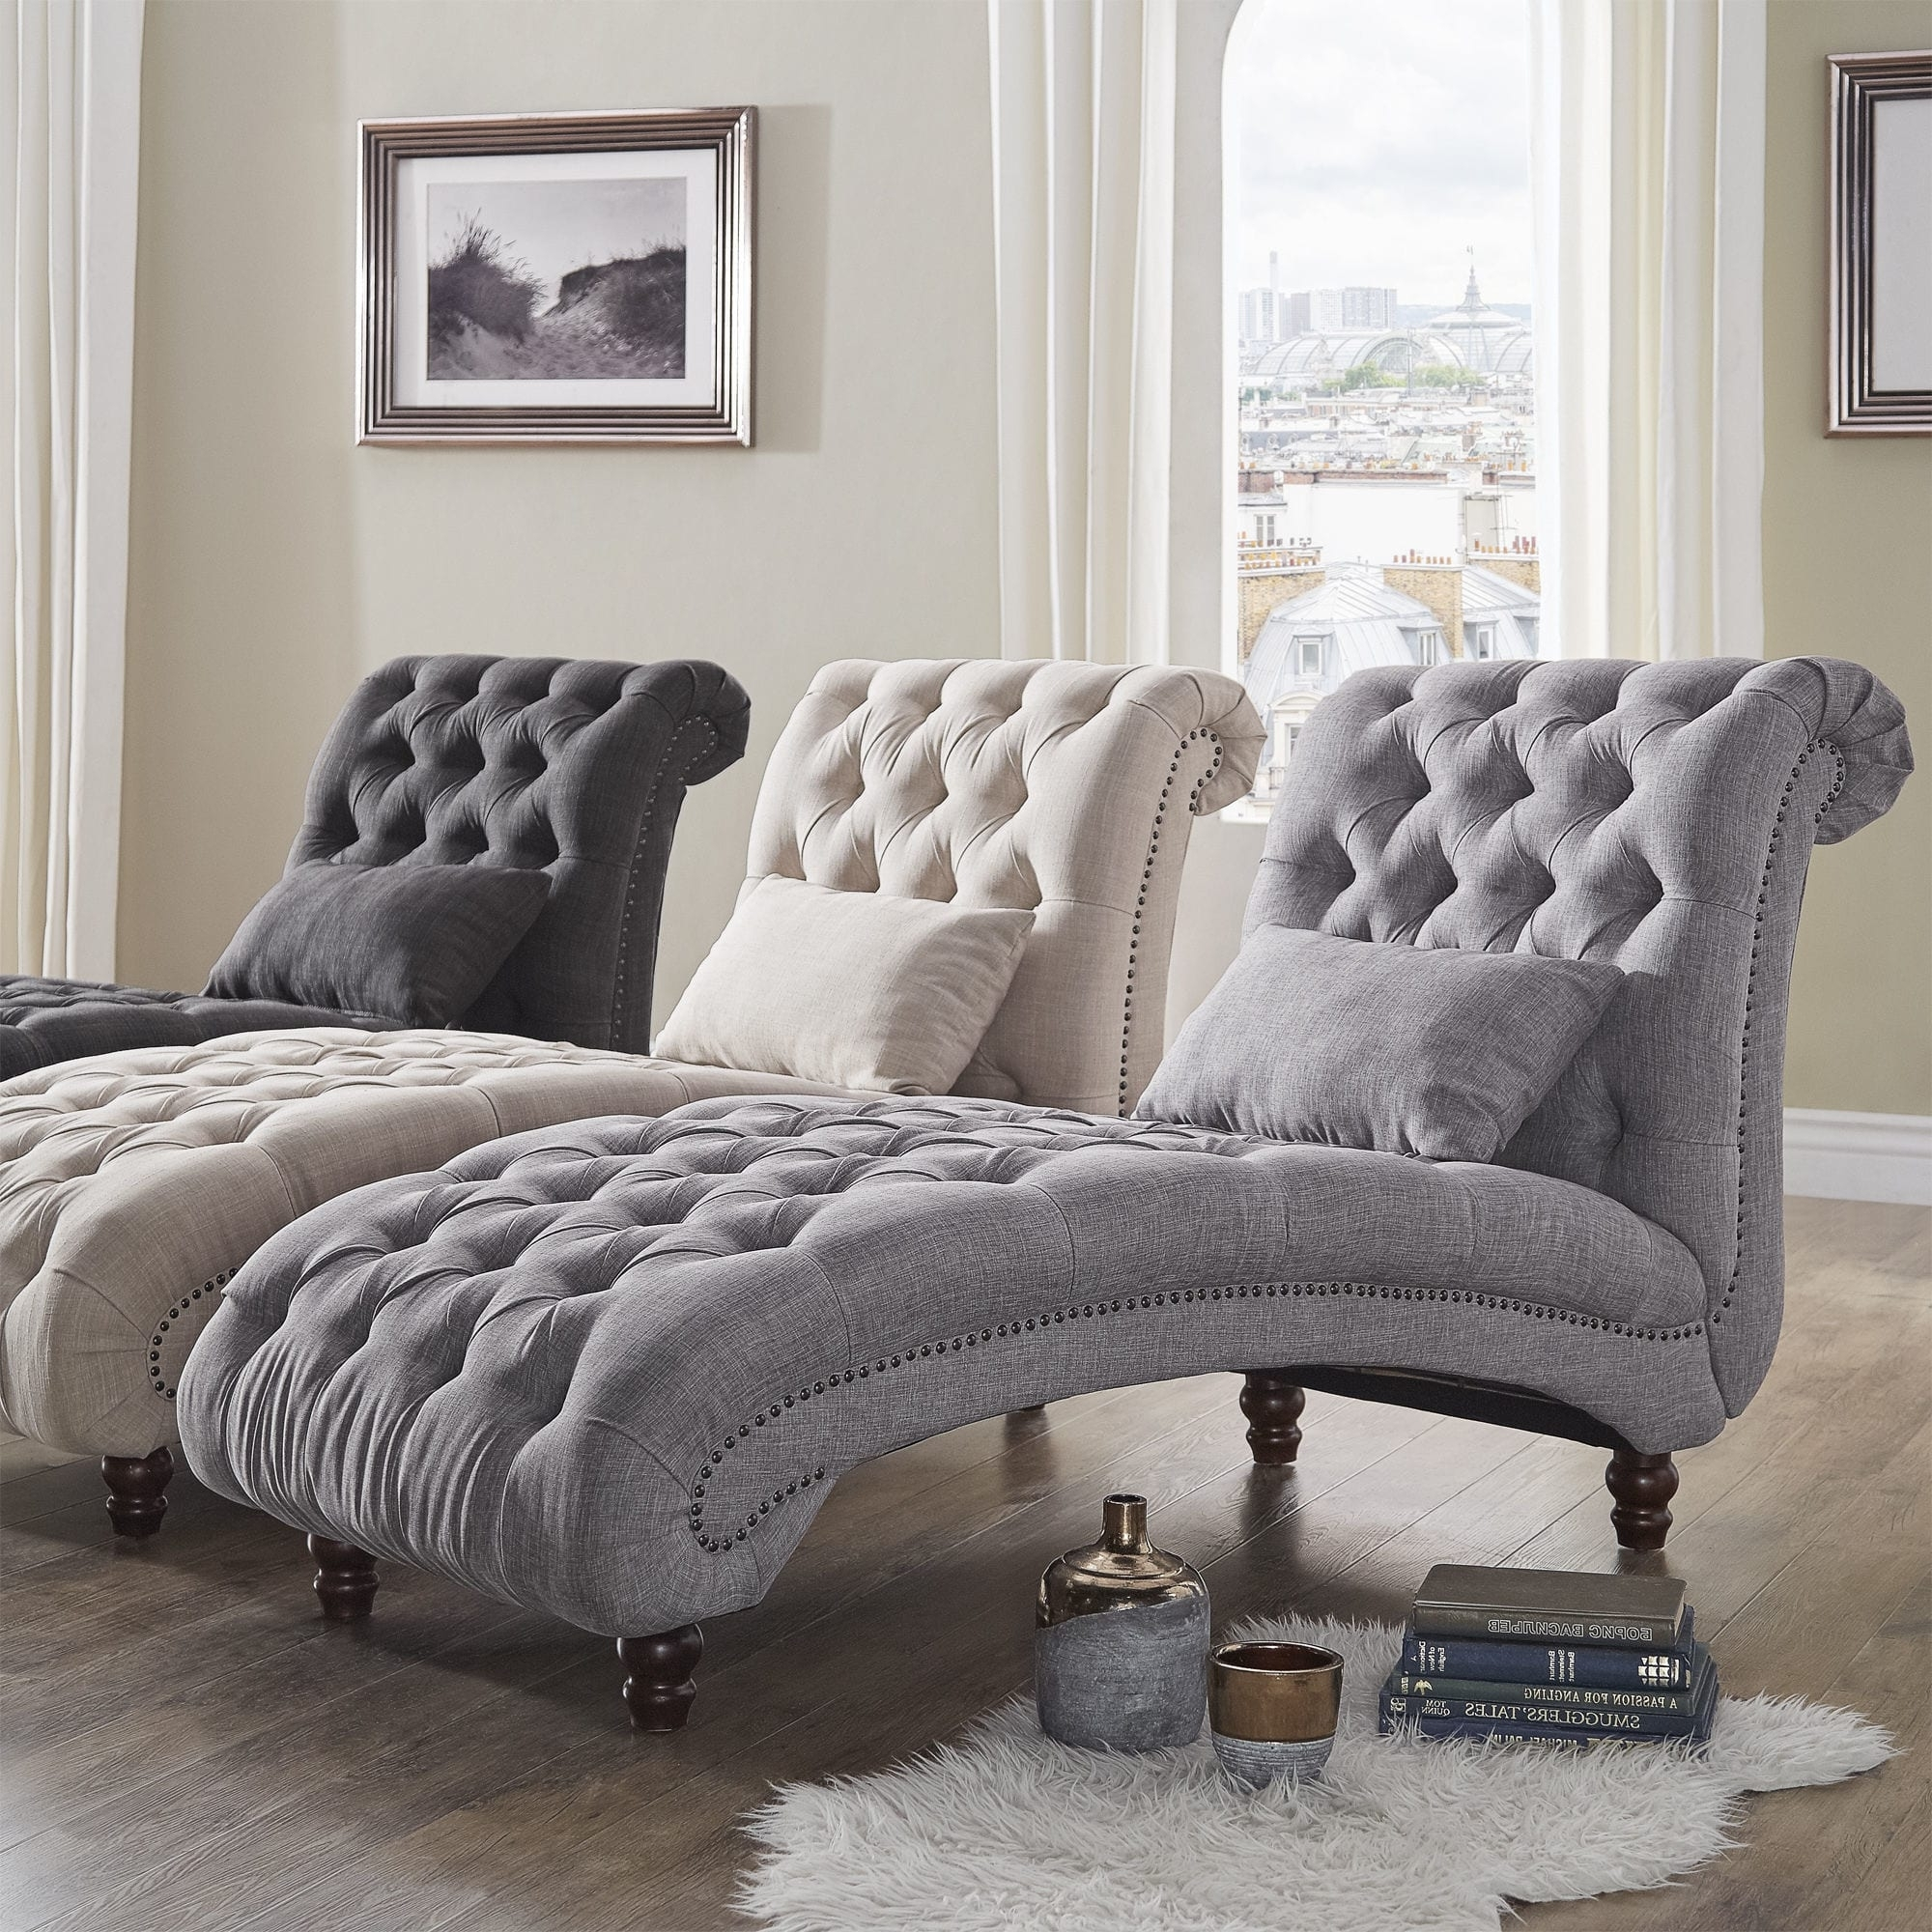 Recent Oversized Chaise Lounges Pertaining To Knightsbridge Tufted Oversized Chaise Loungeinspire Q Artisan (View 2 of 15)